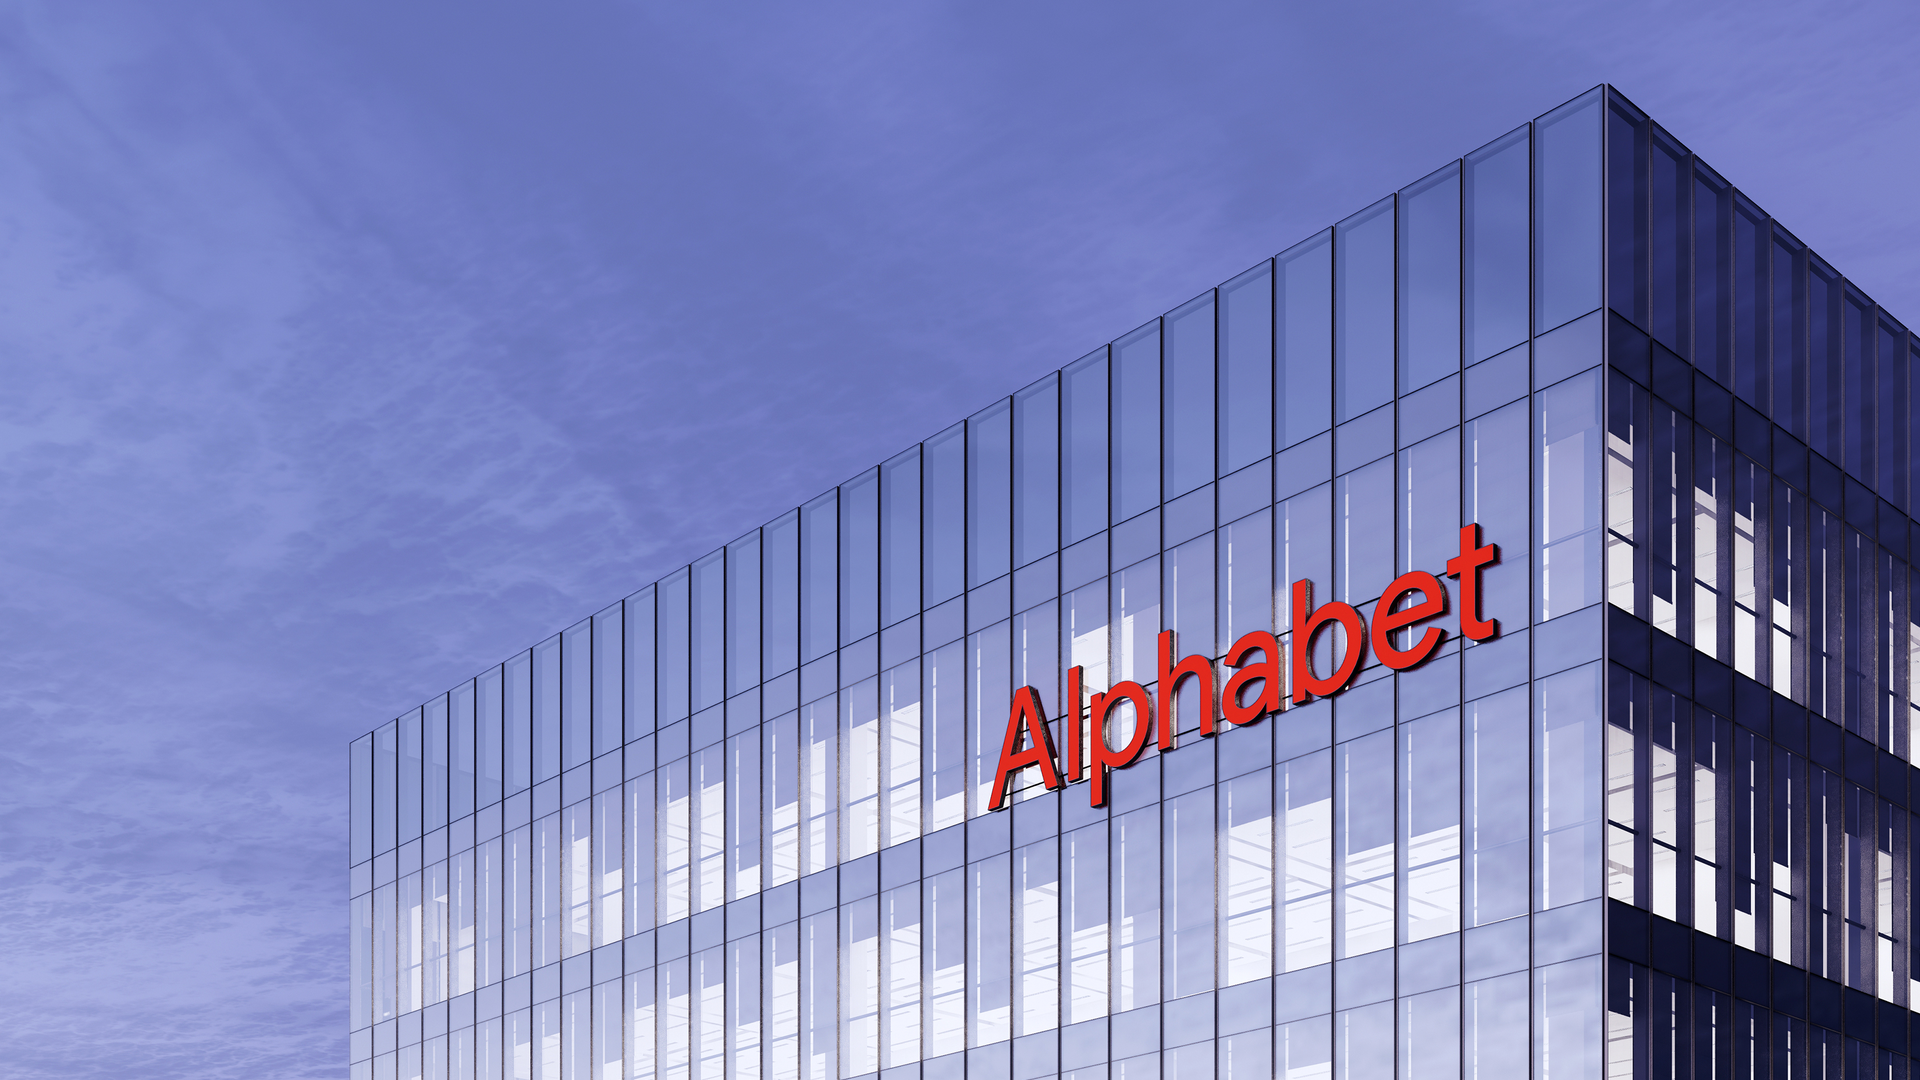 Global Accountancy Institute Weekly Trades Analysis for Alphabet Inc. (GOOG)